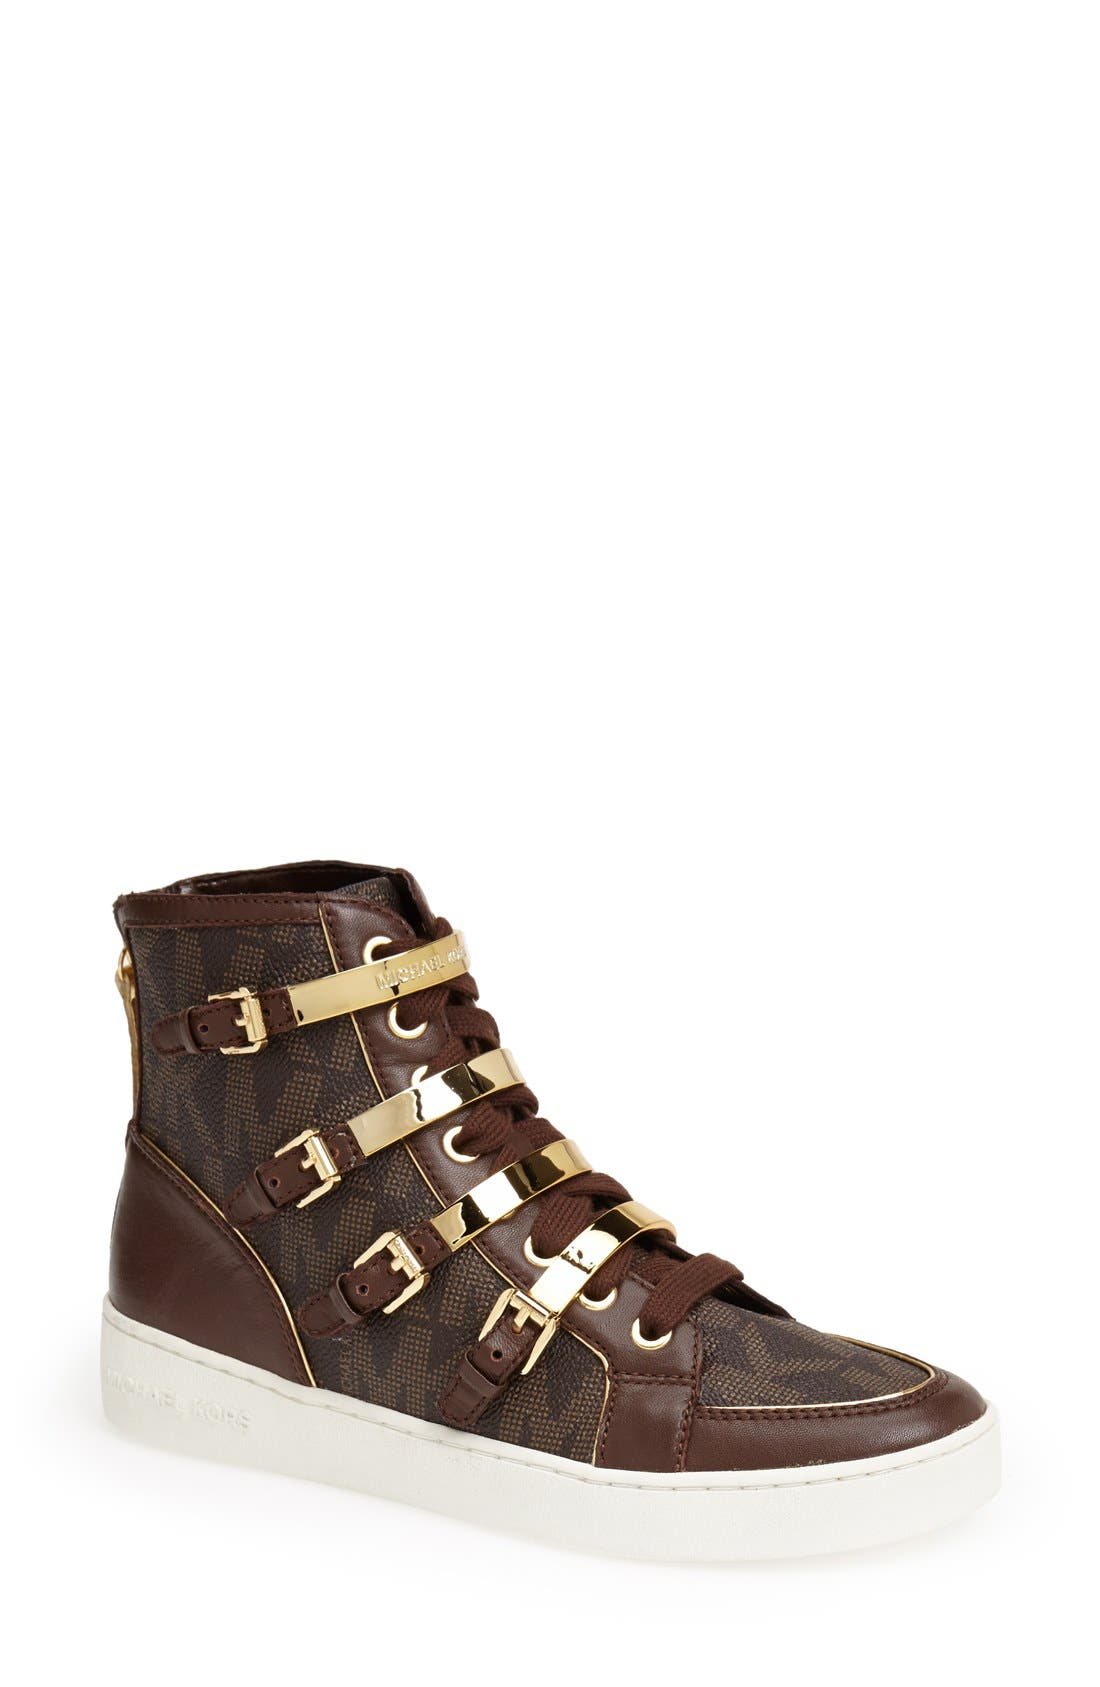 Alternate Image 1 Selected - MICHAEL Michael Kors 'Kimberly' High Top Sneaker (Women)